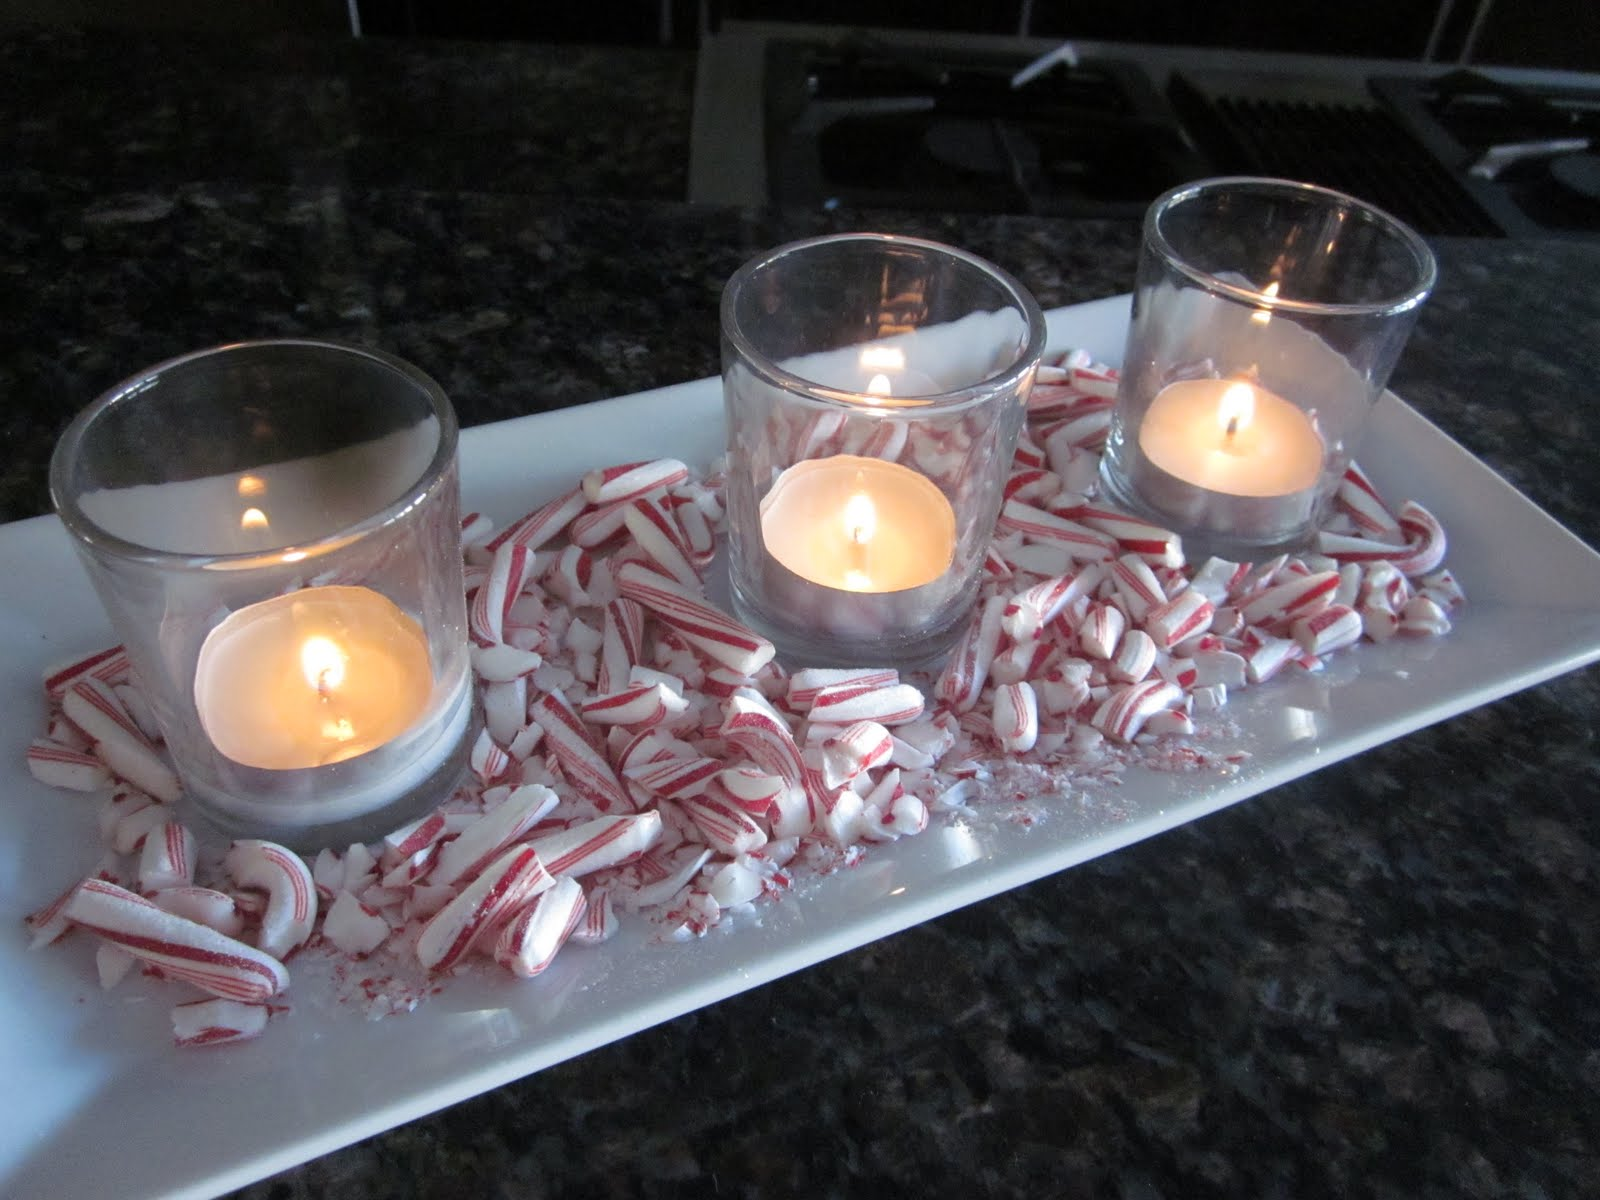 Candy and candles